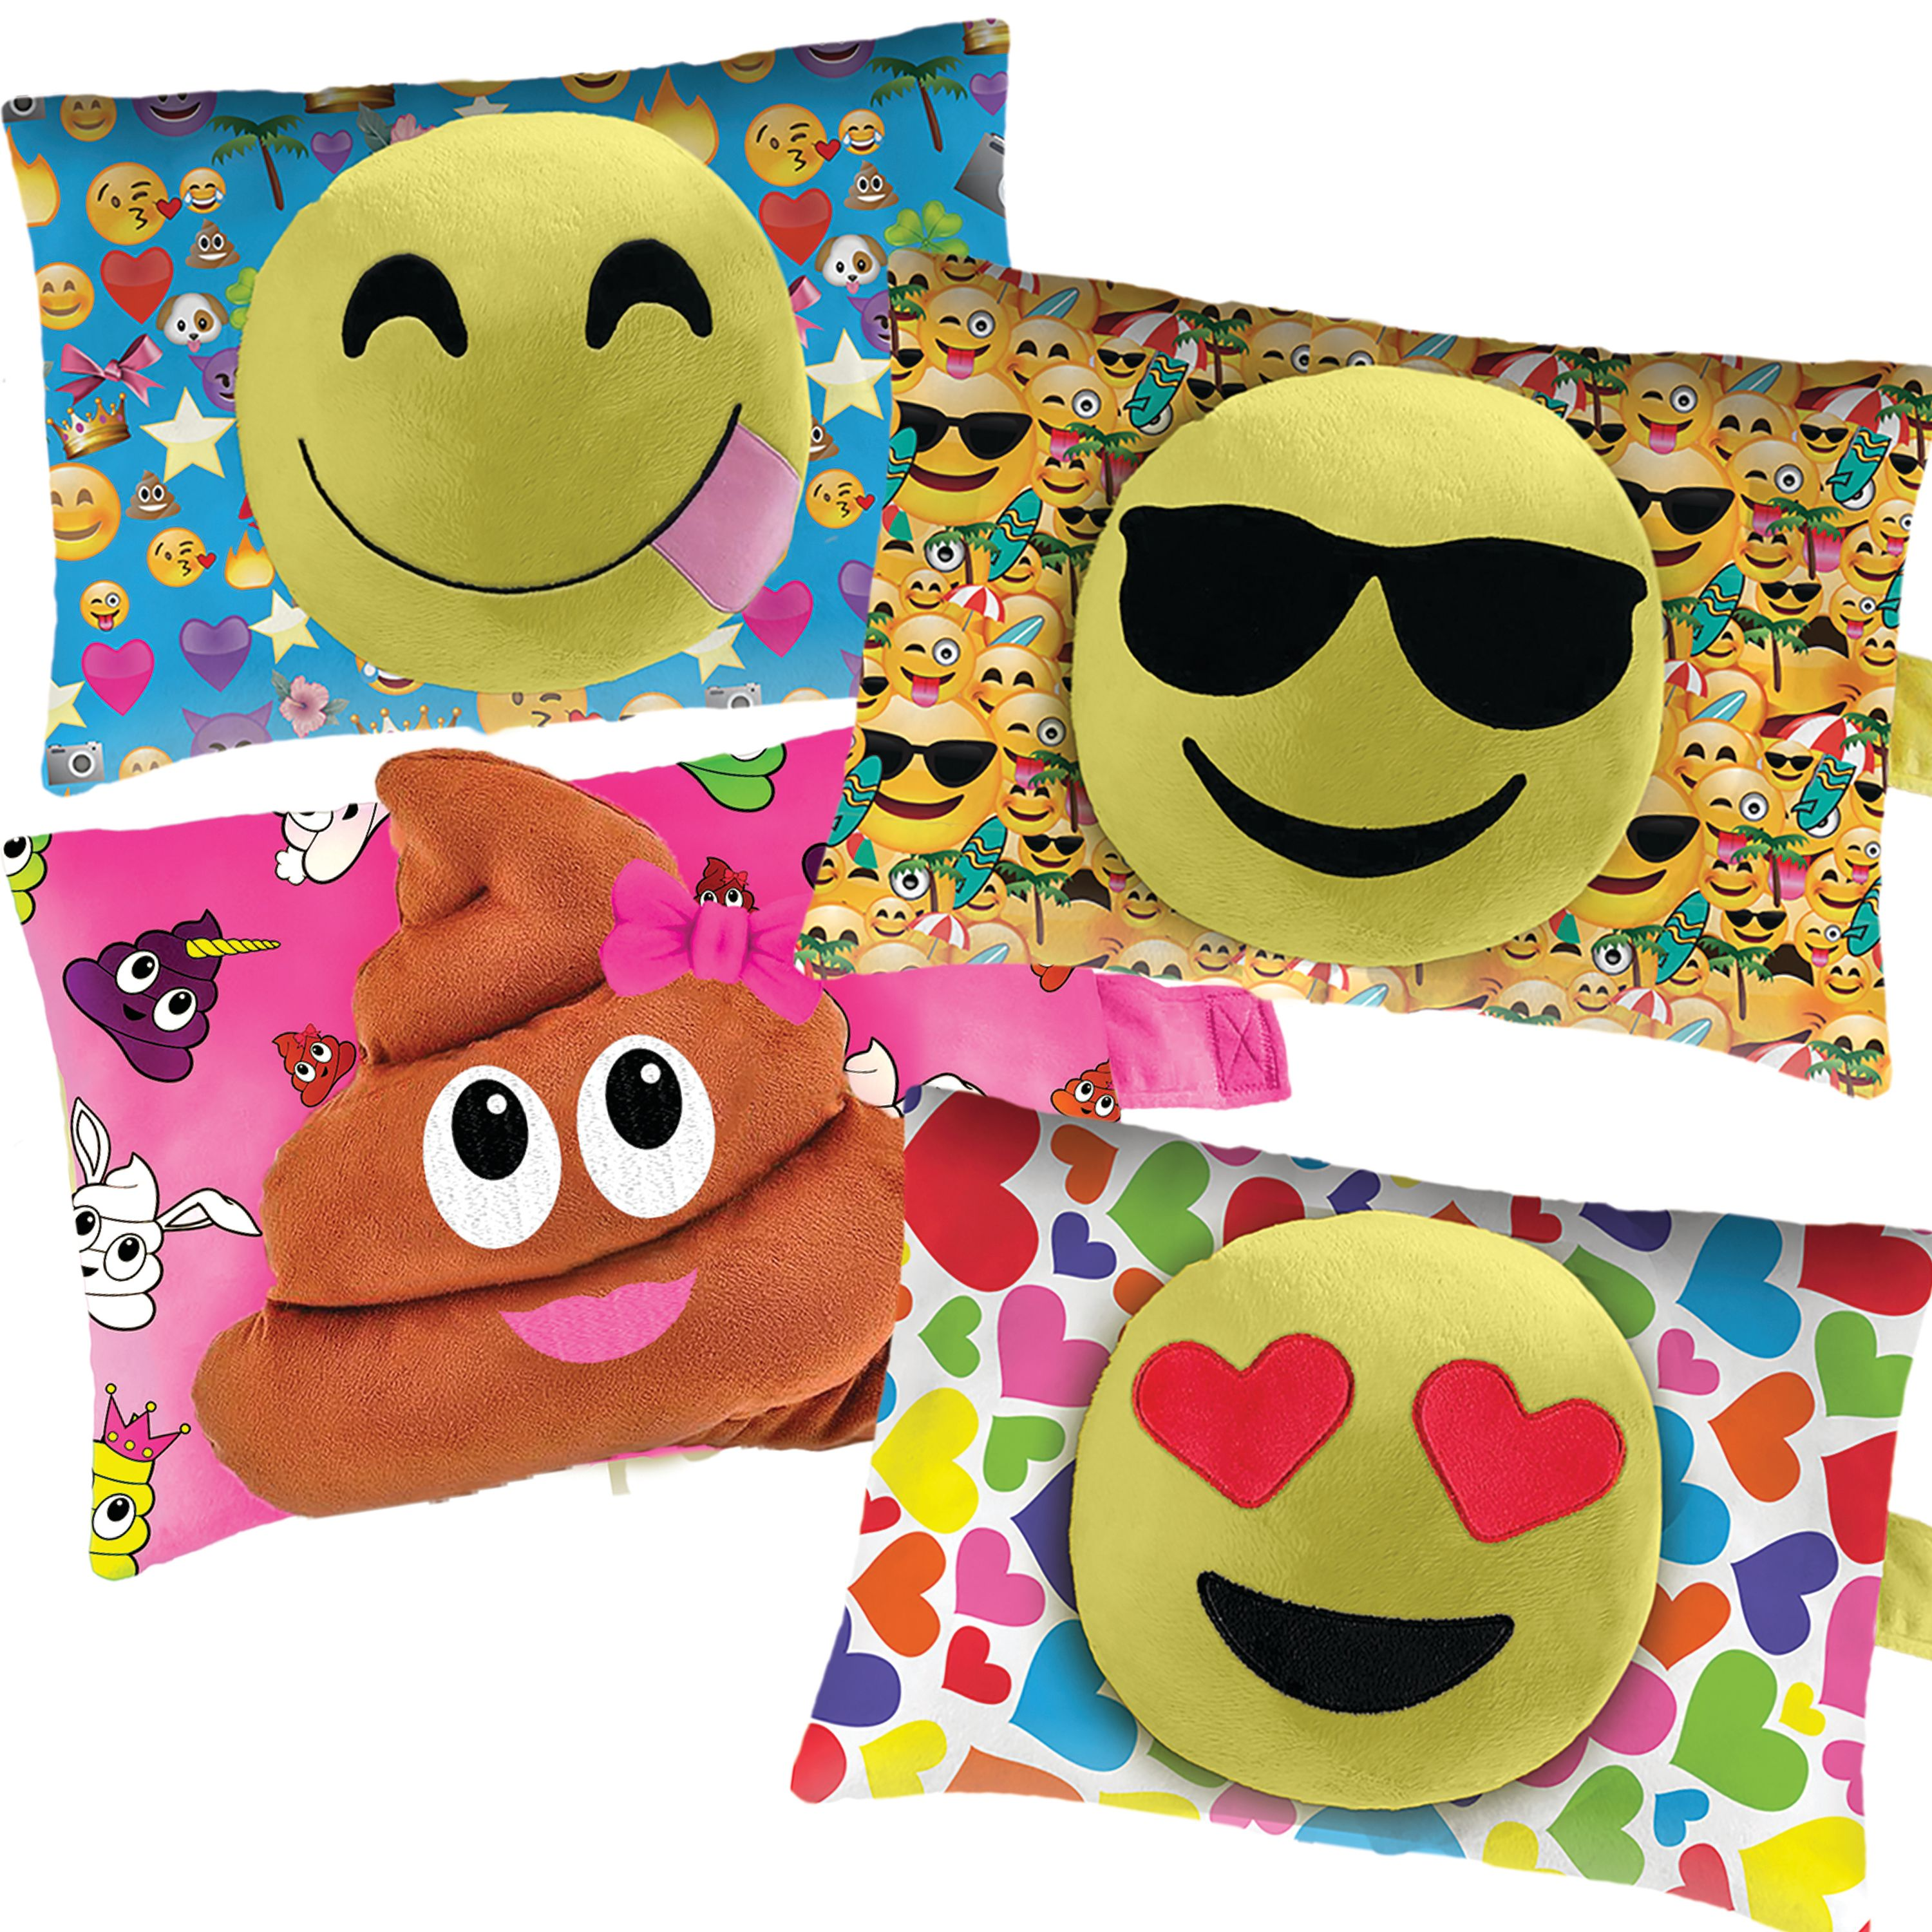 Pillow Pets Smiley Combo 4-Pack-Smiley, Stinky, Hearts, & Sunglasses Smiley Faces